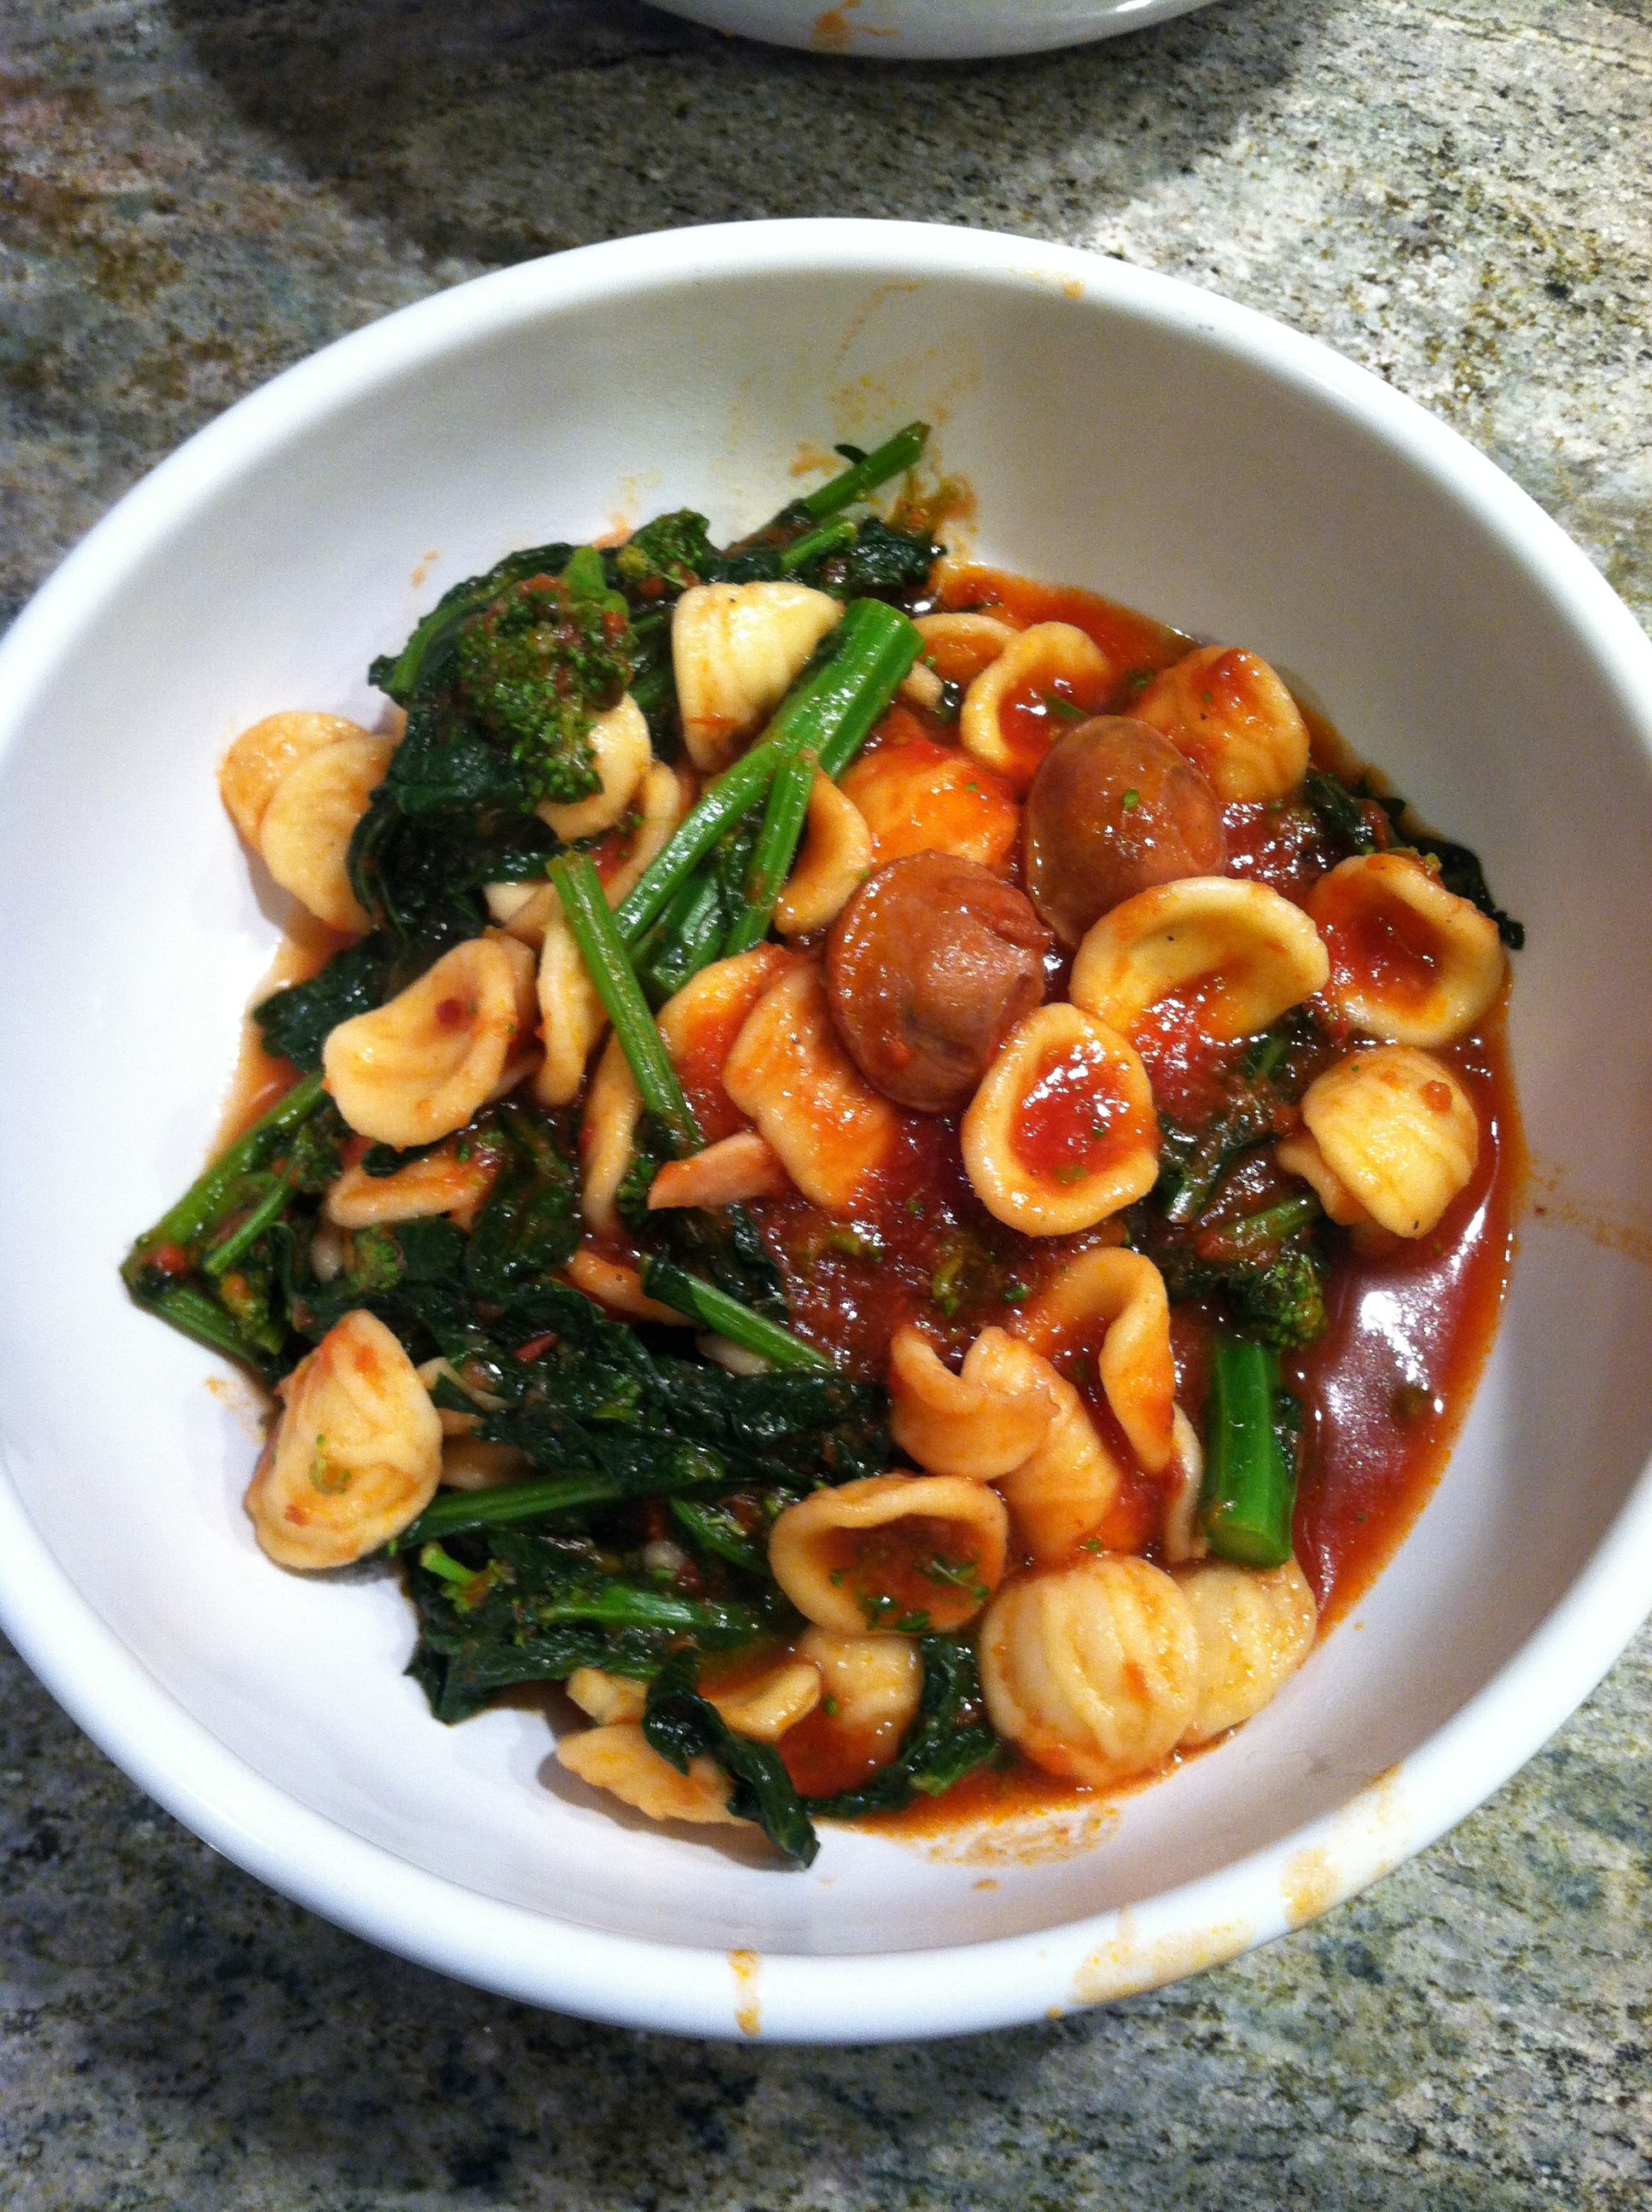 Ina Garten 39 S Recipe For Sausage Broccoli Rabe And